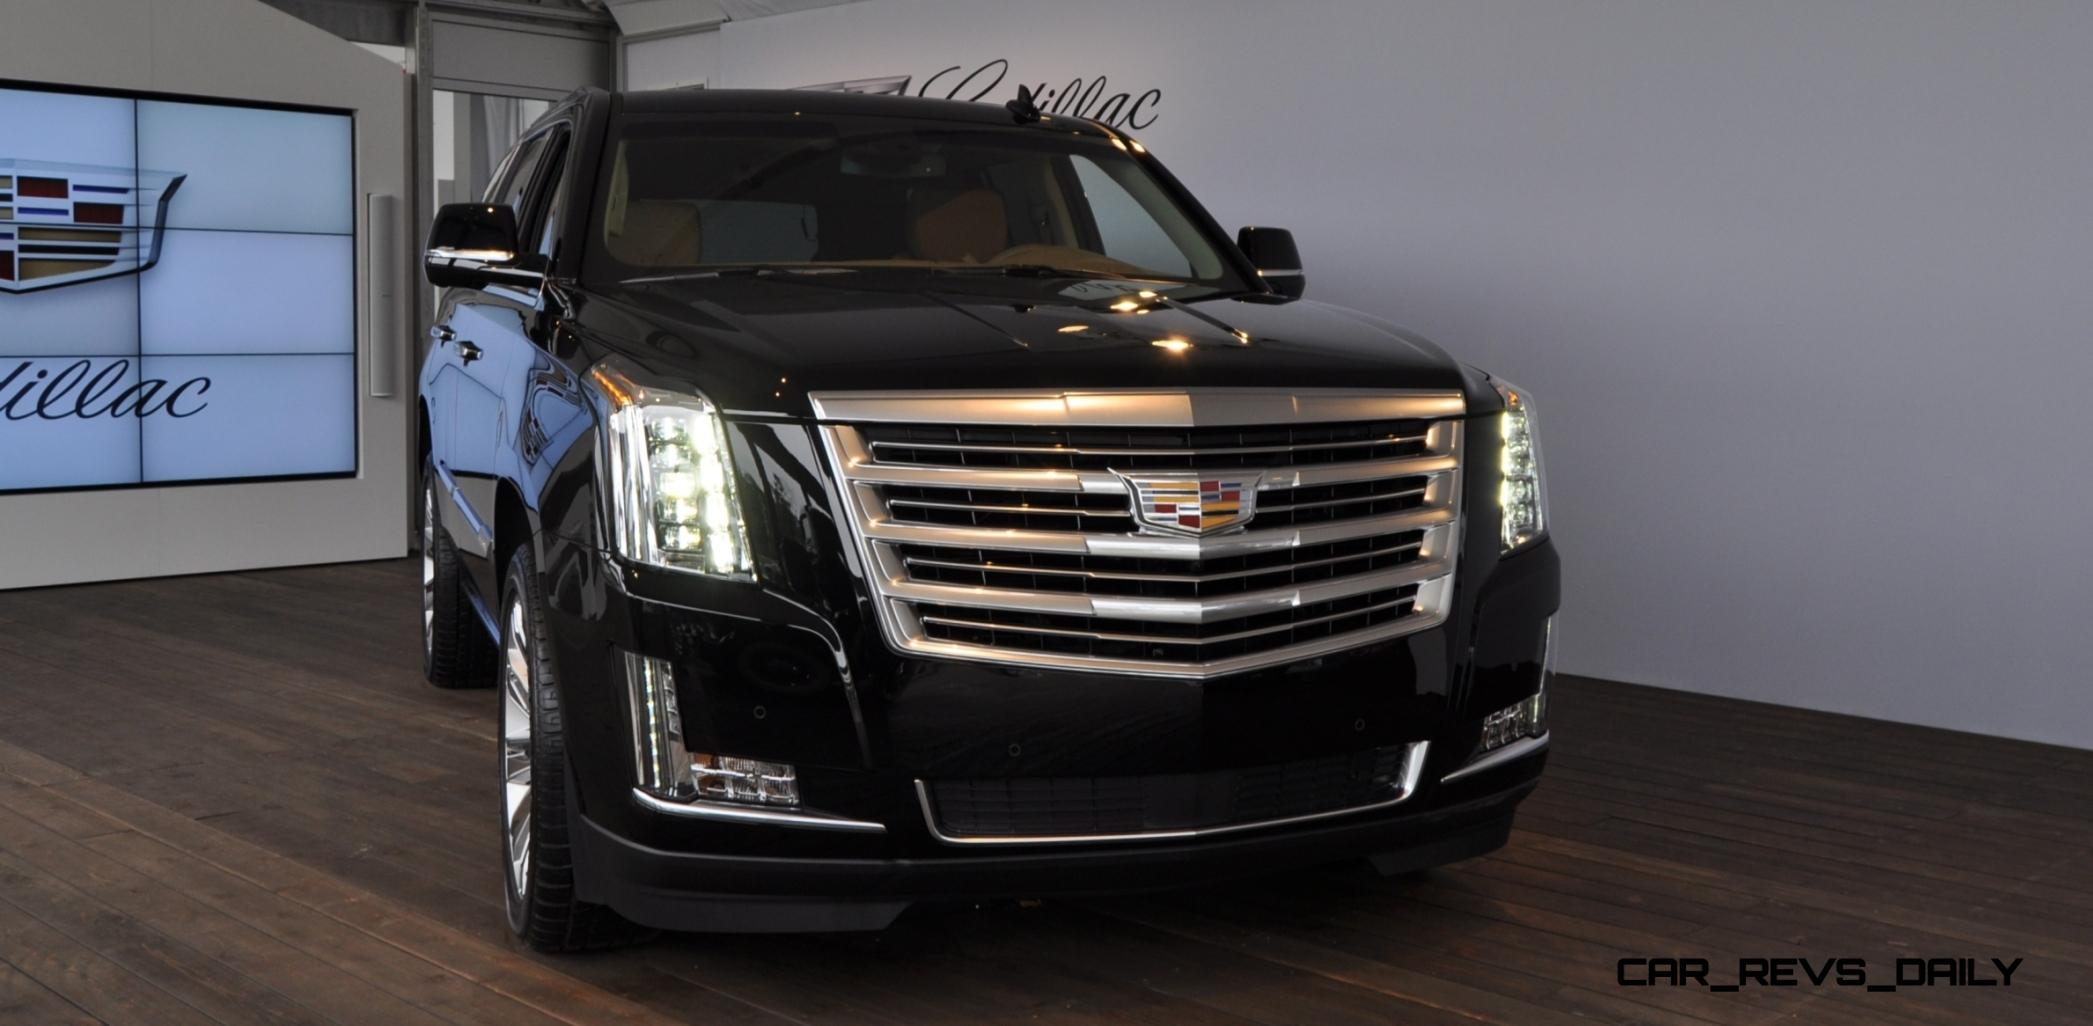 Re mega review of 2015 escalade luxury 4wd 100 photos and 3 videos